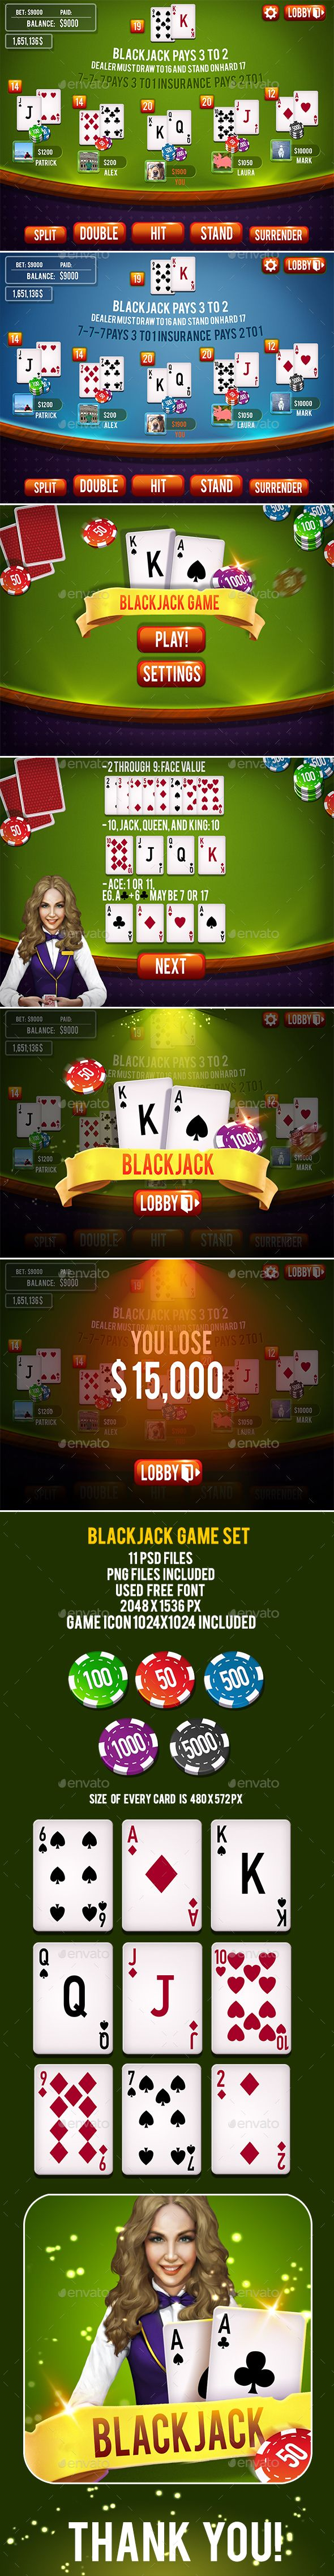 Blackjack Card Game Set — Photoshop PSD #sprite sheets #poker chips • Available here → https://graphicriver.net/item/blackjack-card-game-set/16173335?ref=pxcr